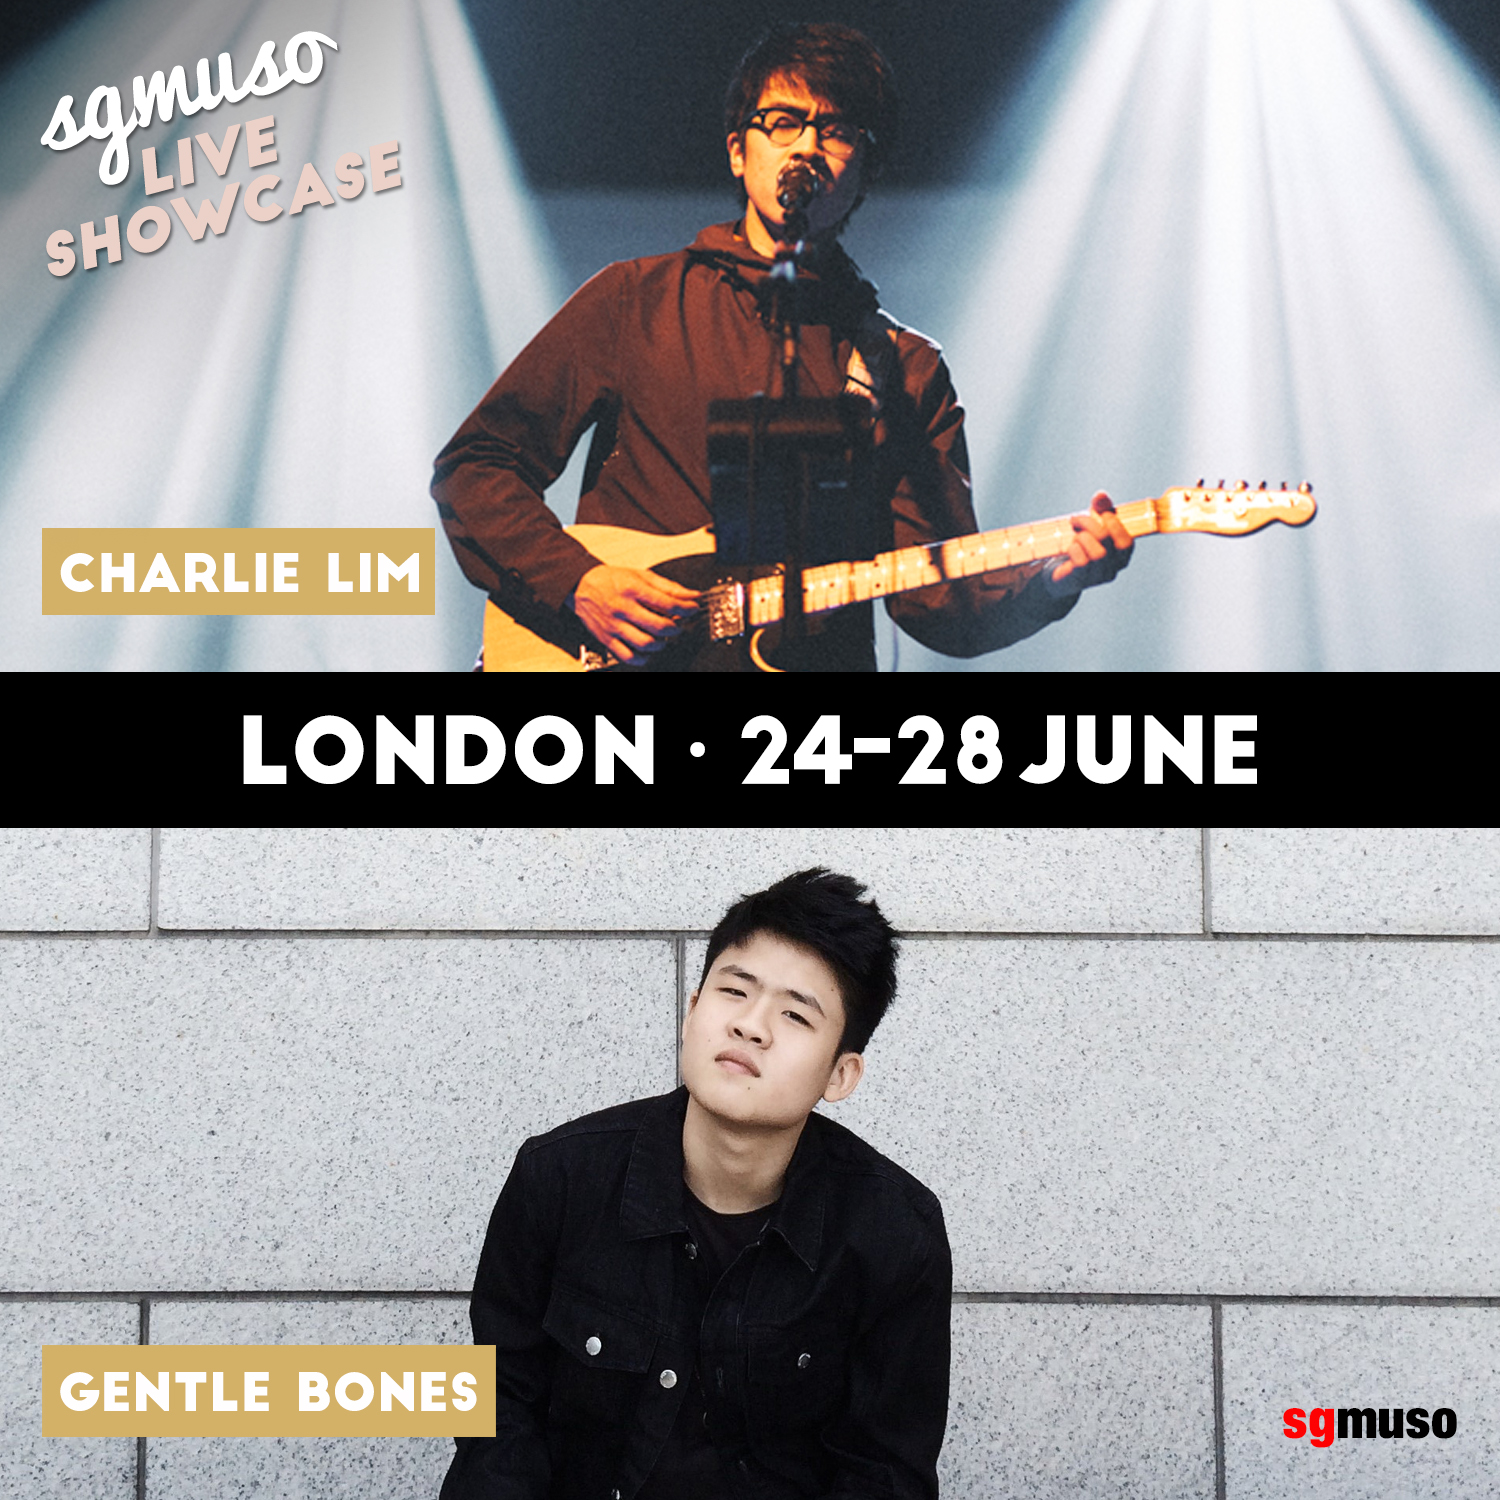 The London showcases featured some of Singapore's most prolific musicians, singer-songwriters Charlie Lim and Gentle Bones, indie rock quintet Pleasantry, electronic act .gif and art-meets-music duo NADA.